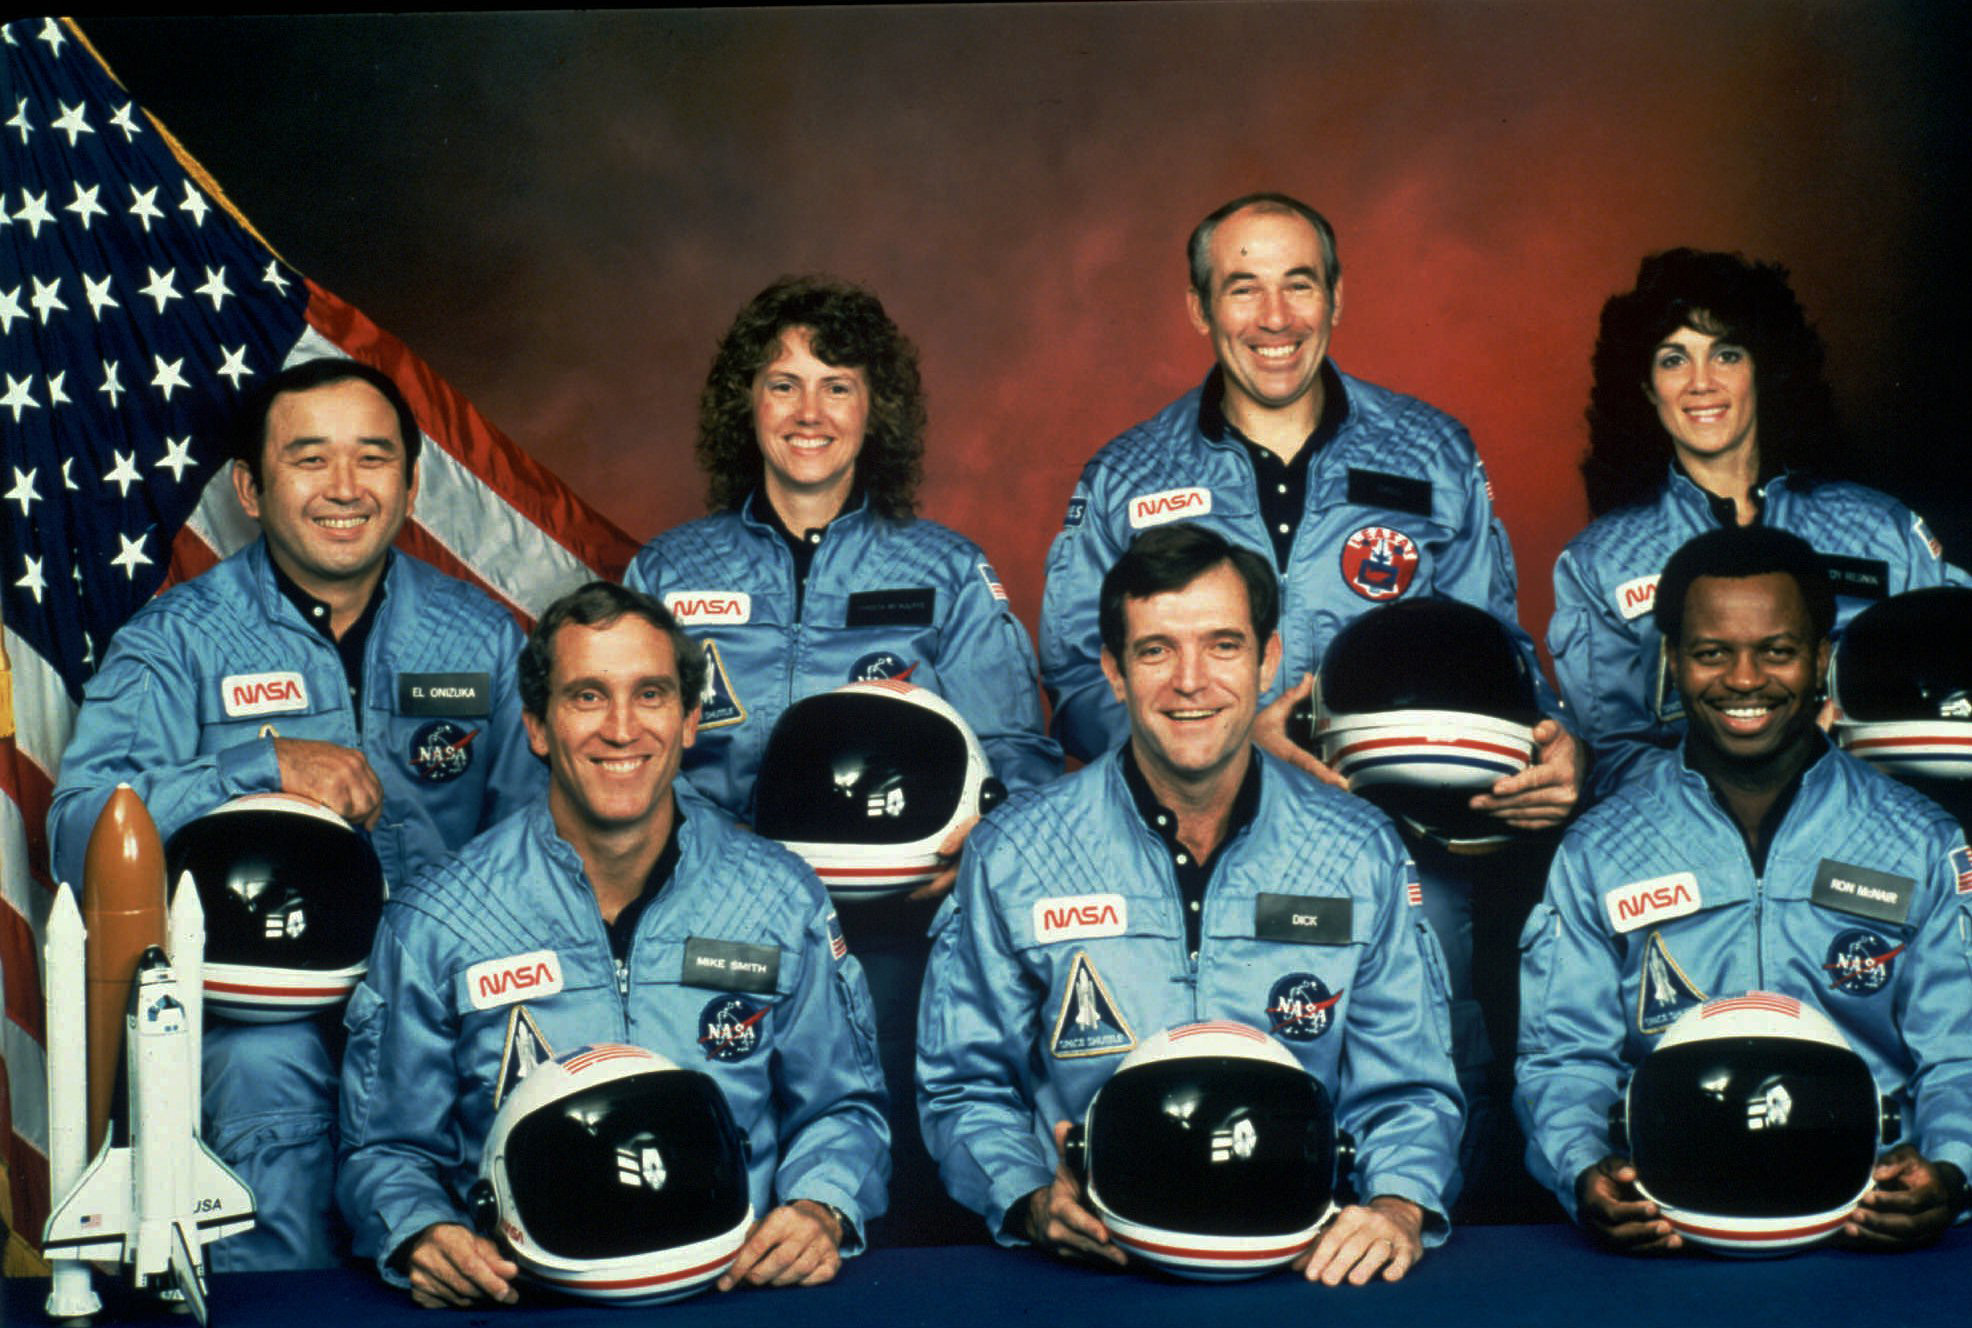 FILE - This photo provided by NASA shows the crew of the Space Shuttle Challenger mission 51L. All seven members of the crew were killed when the shuttle exploded during launch on Jan. 28, 1986. Front row from left are Michael J. Smith, Francis R. (Dick) Scobee, and Ronald E. McNair. Front row from left are Ellison Onizuka, Christa McAuliffe, Gregory Jarvis, and Judith Resnik. (NASA via AP)